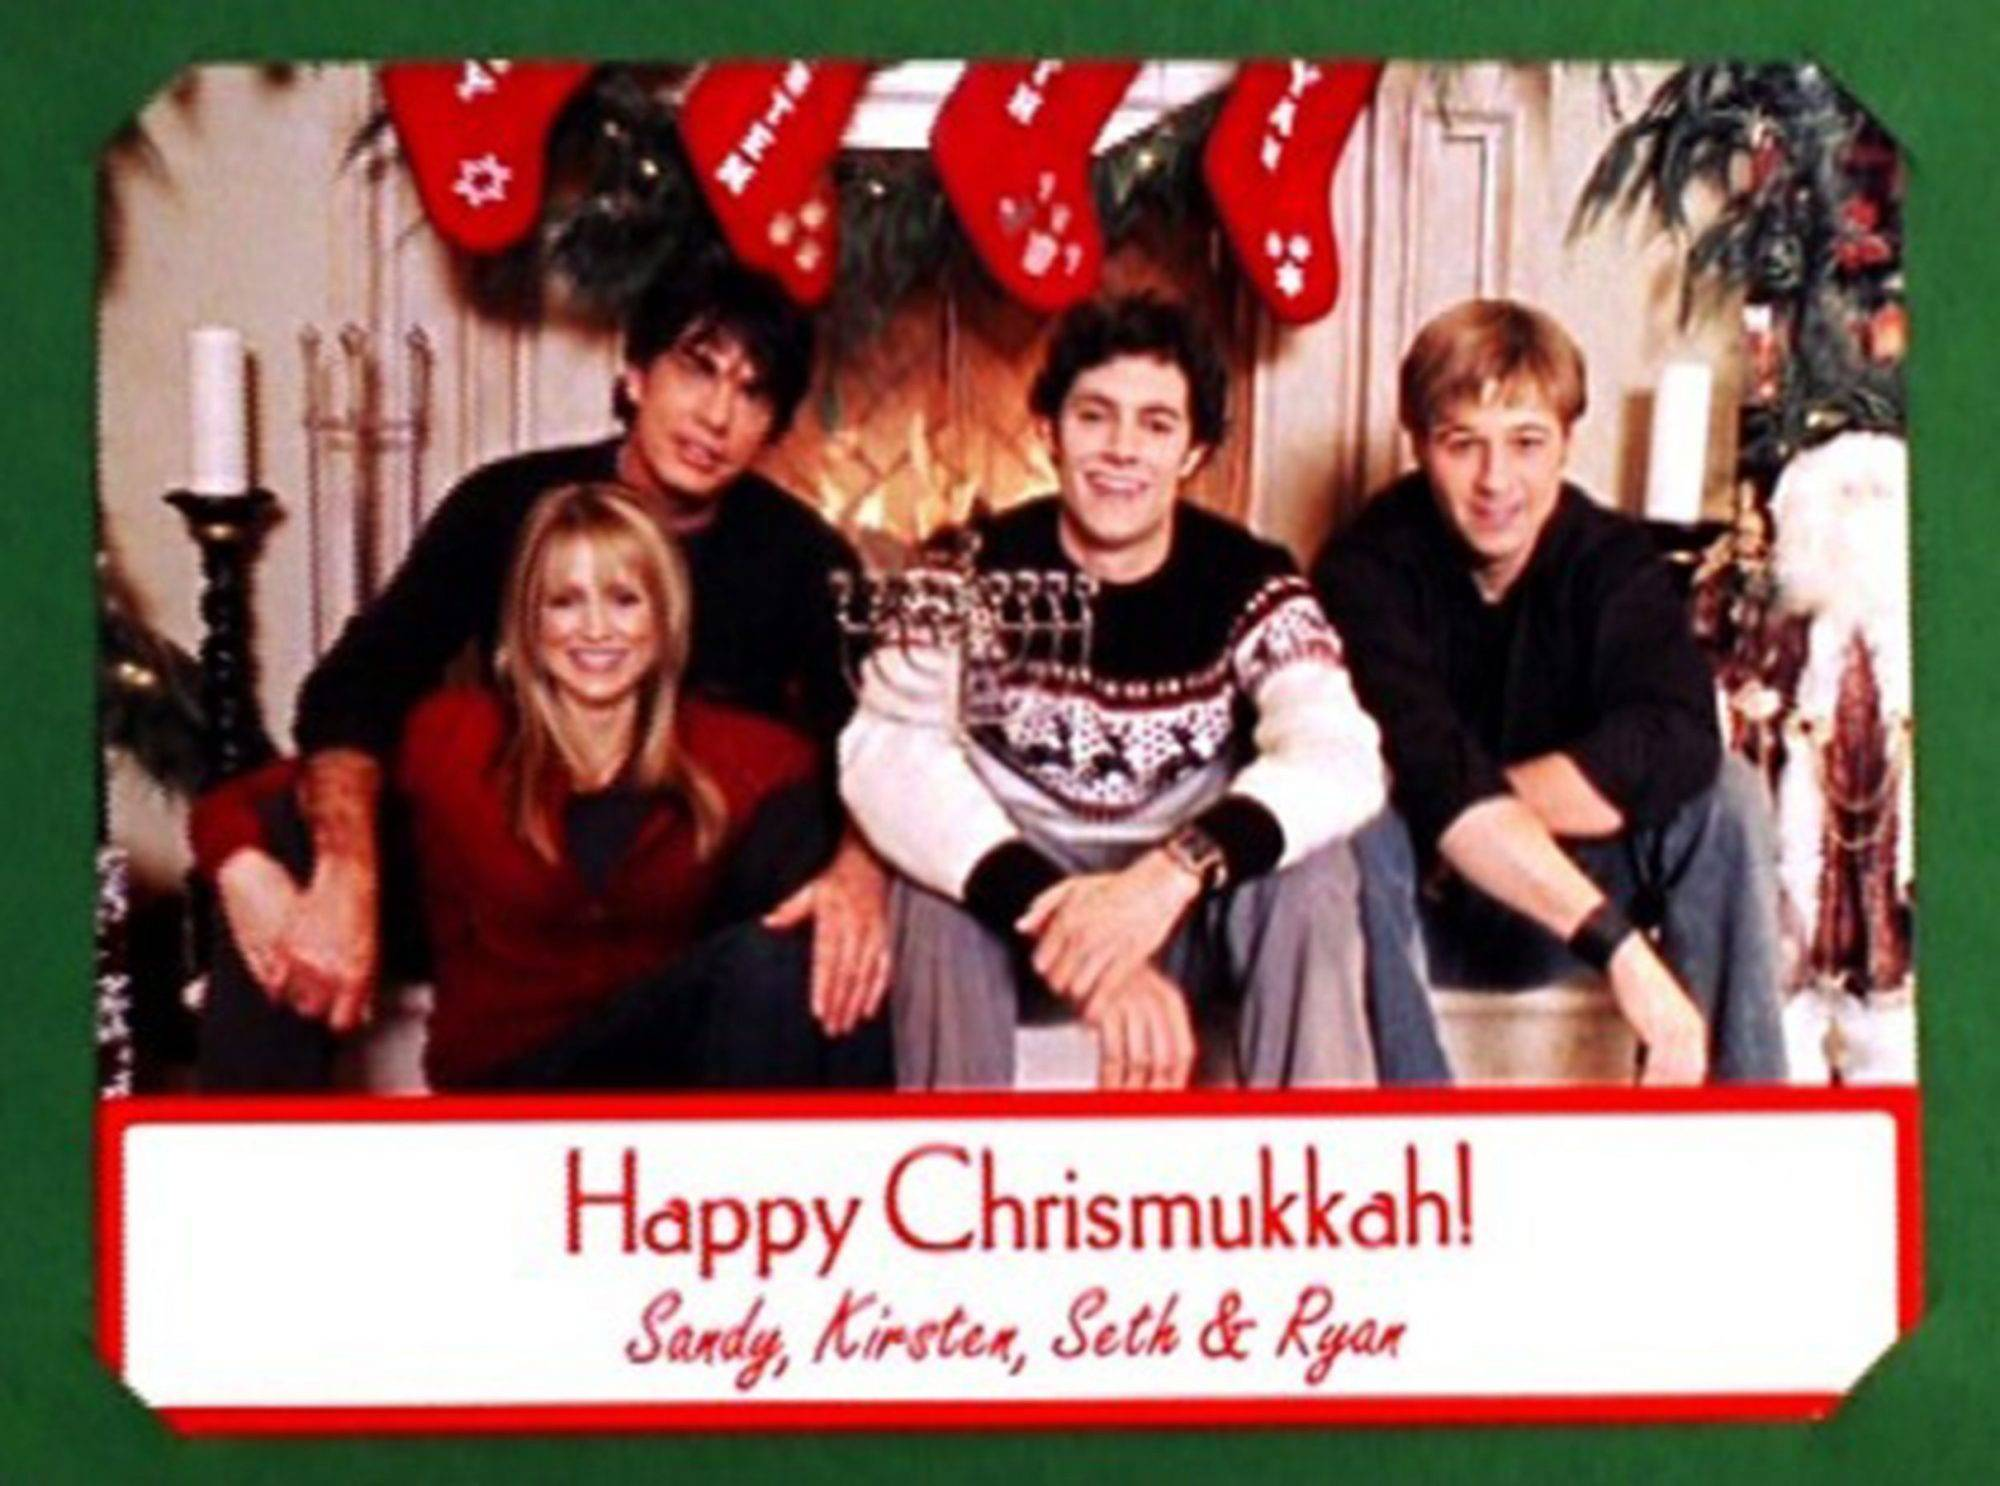 Regali di Natale per i personaggi di the O.C.